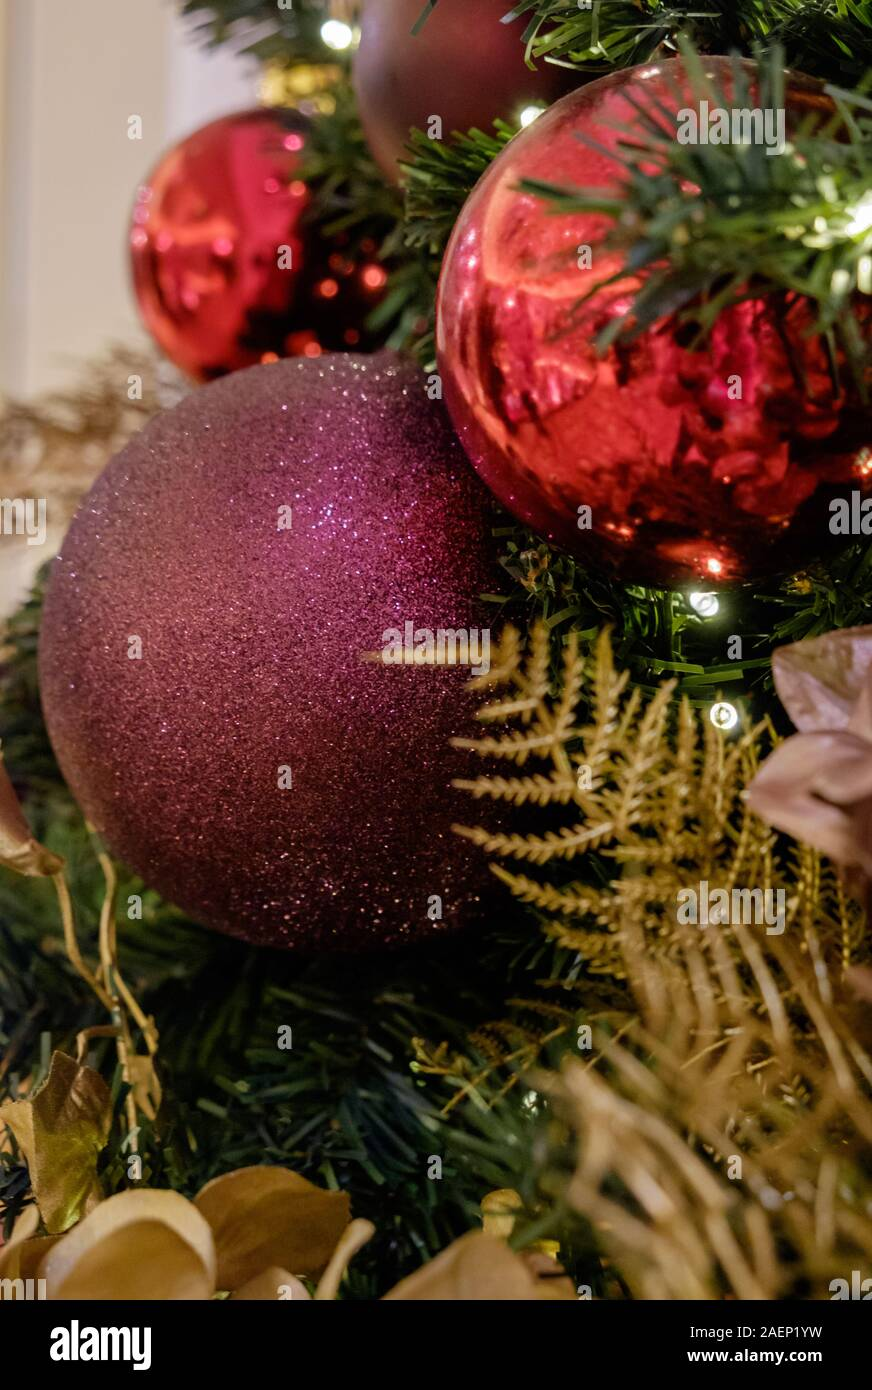 Close Up Of Christmas Tree With Colourful Red Purple And Gold Baubles And Decorations Stock Photo Alamy